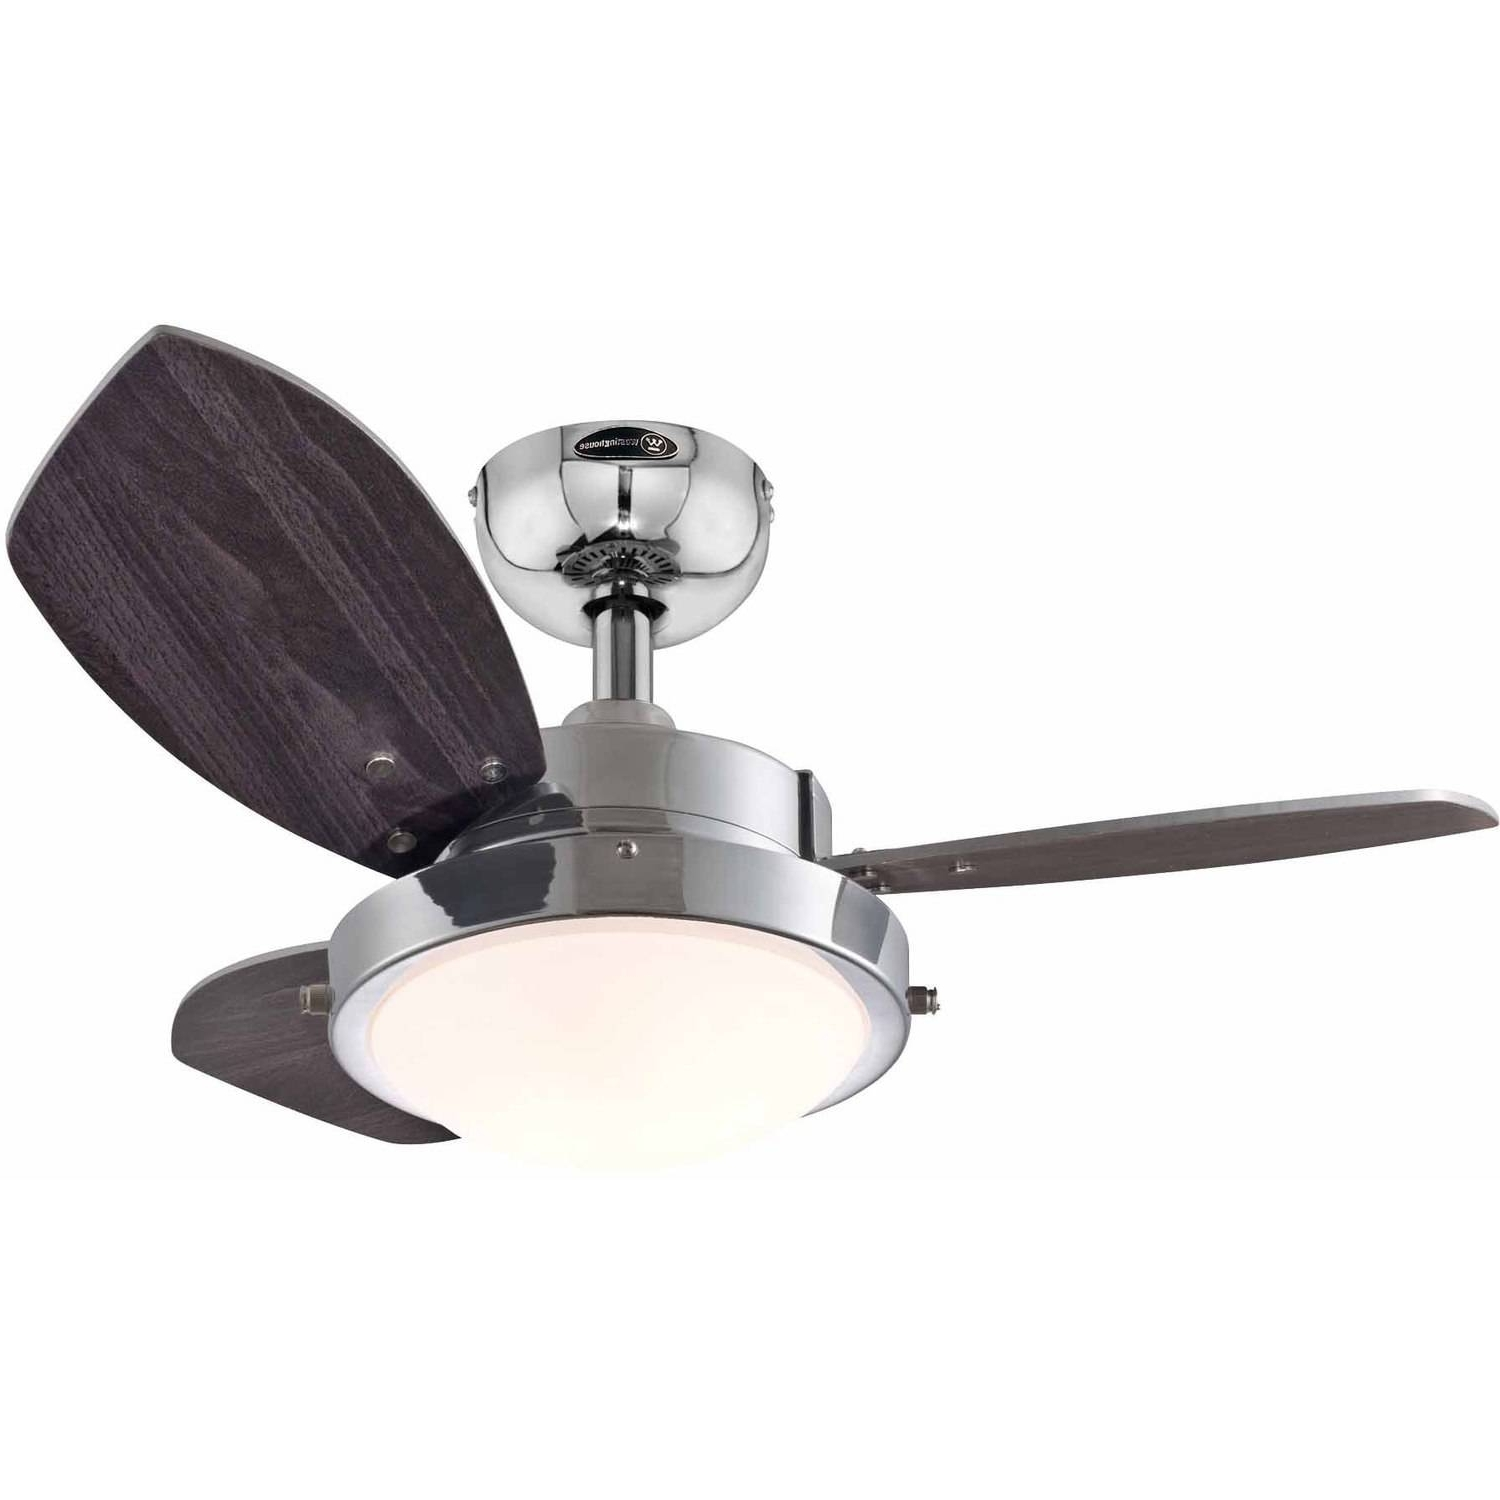 """Westinghouse 7224300 24"""" Quince Reversible Indoor Ceiling Fan Inside Best And Newest Outdoor Ceiling Fans At Walmart (View 19 of 20)"""